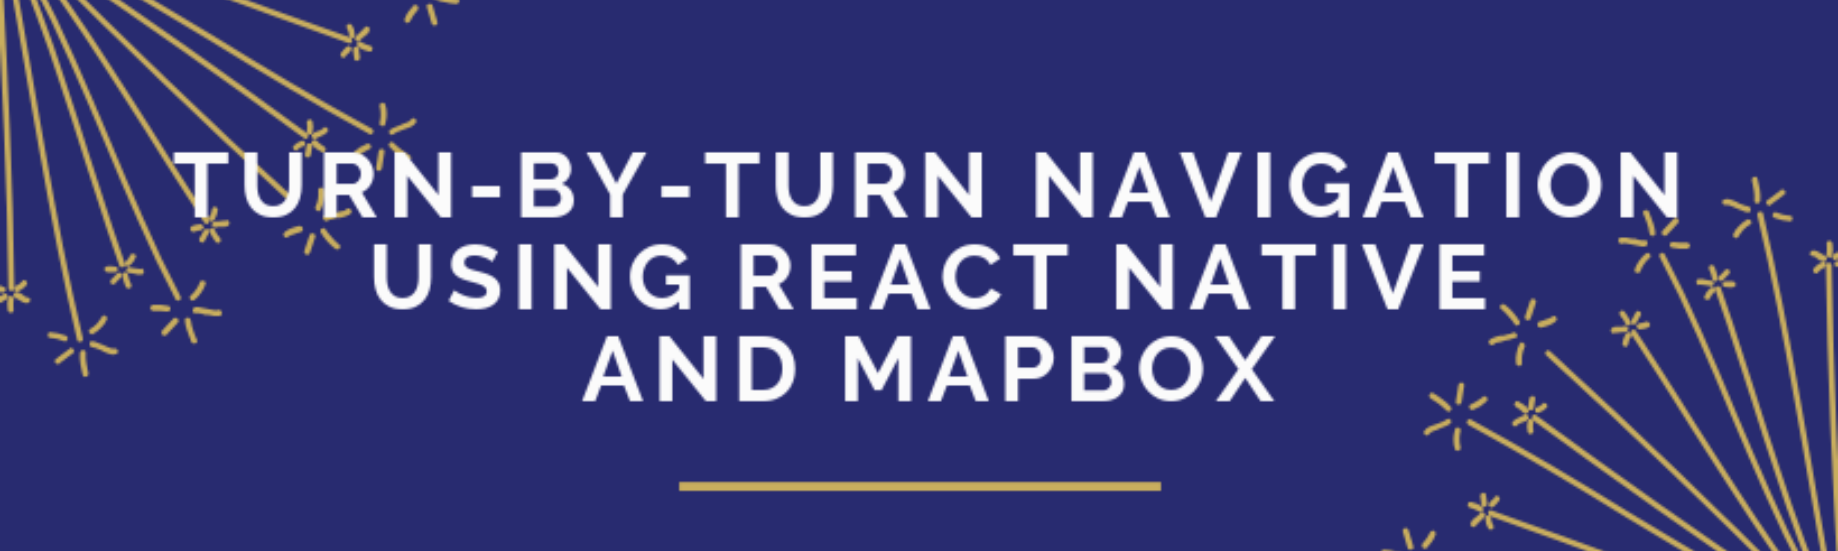 Turn-by-turn Navigation using React Native and MapBox